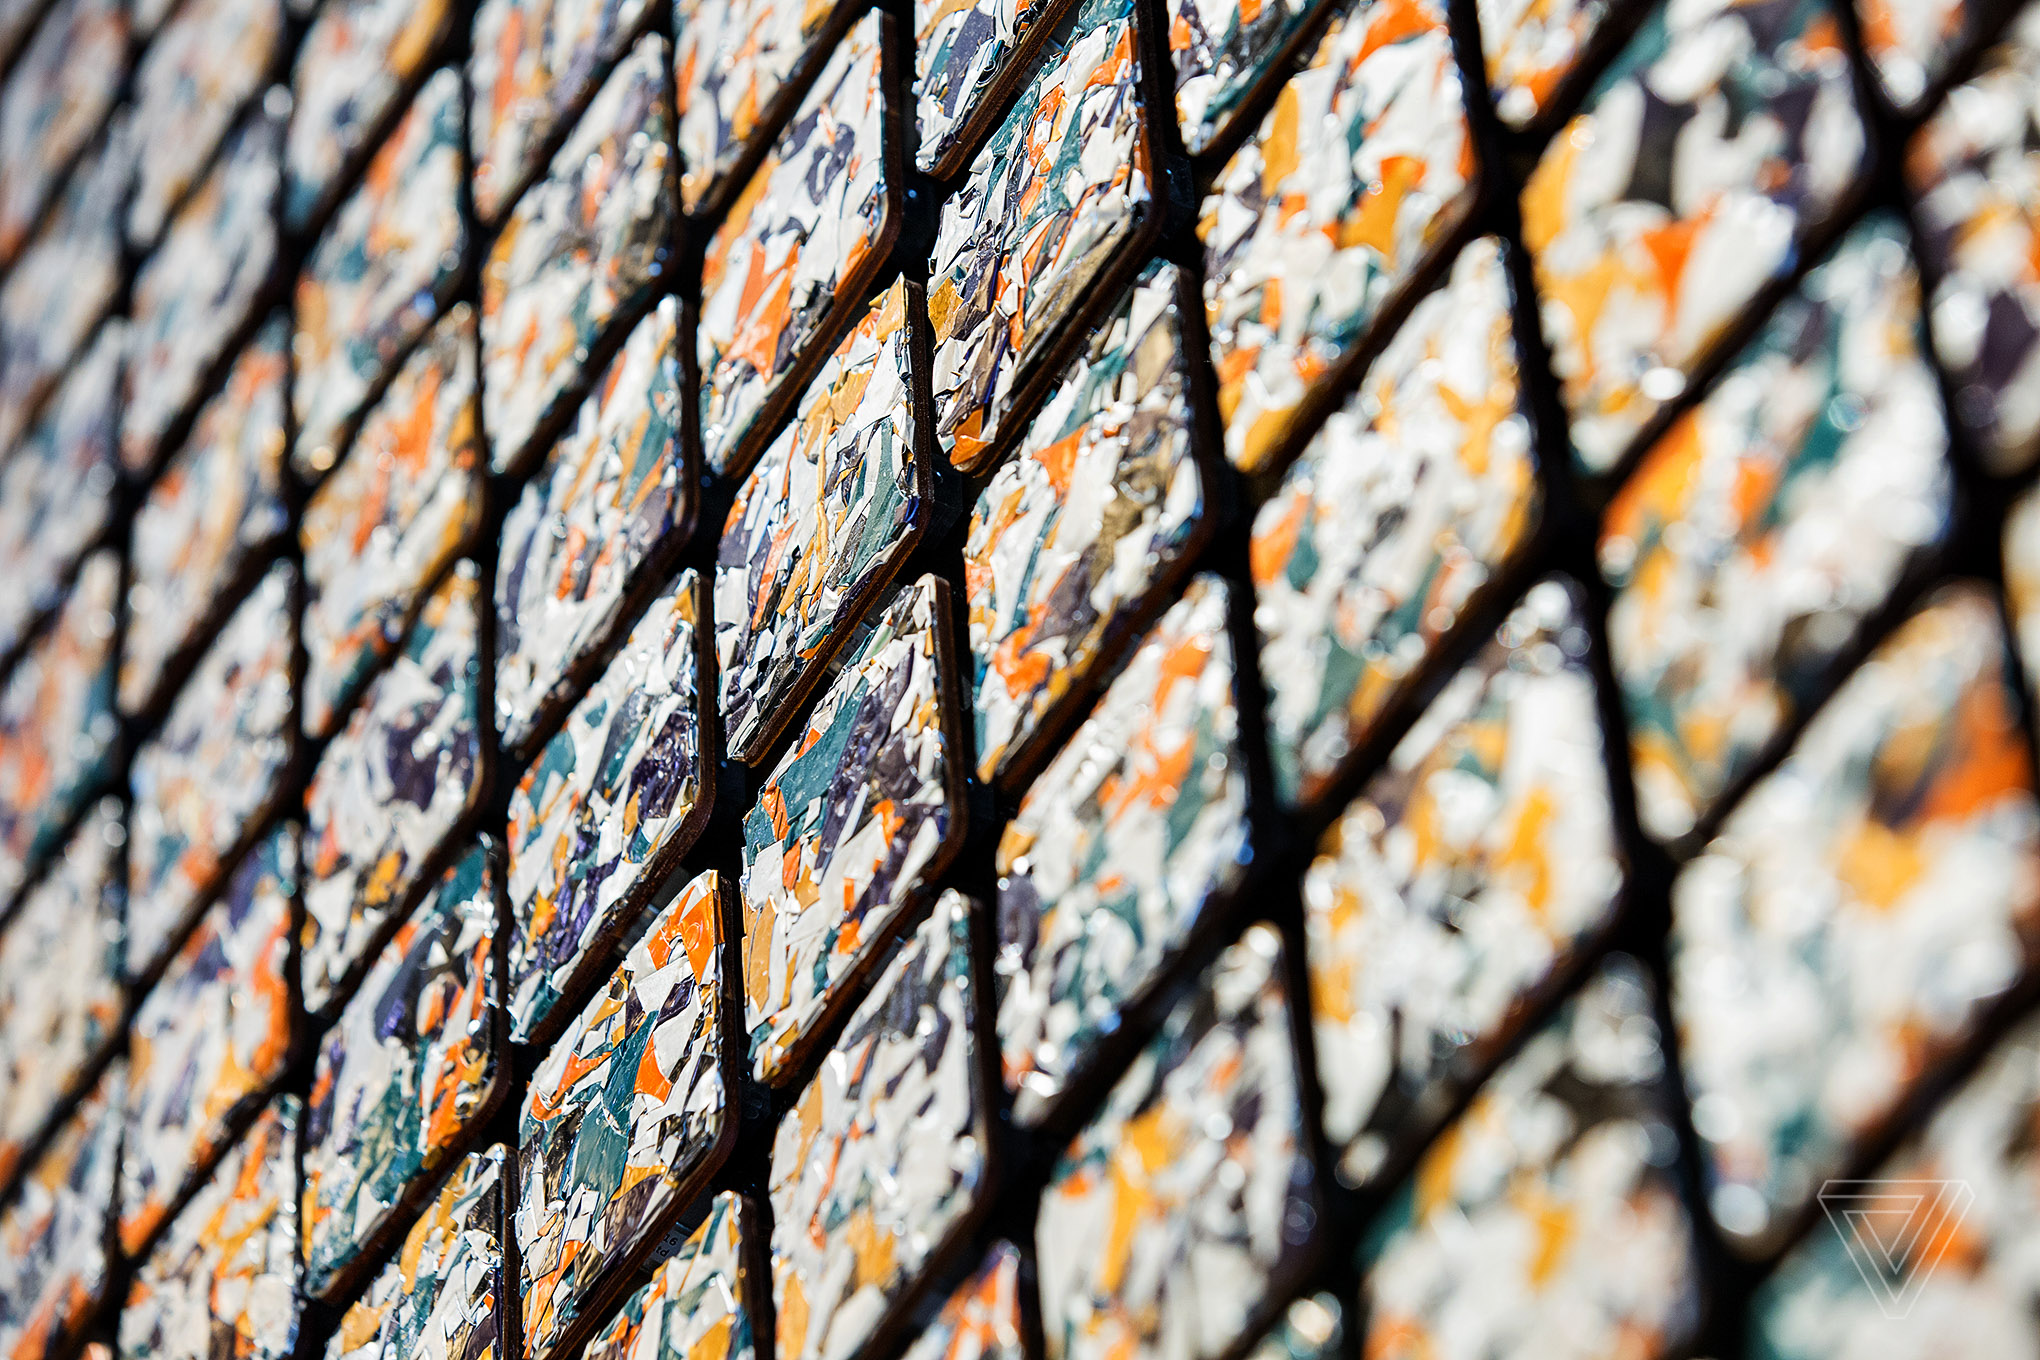 Daniel Rozin's interactive sculpture is made of 832 moving tiles